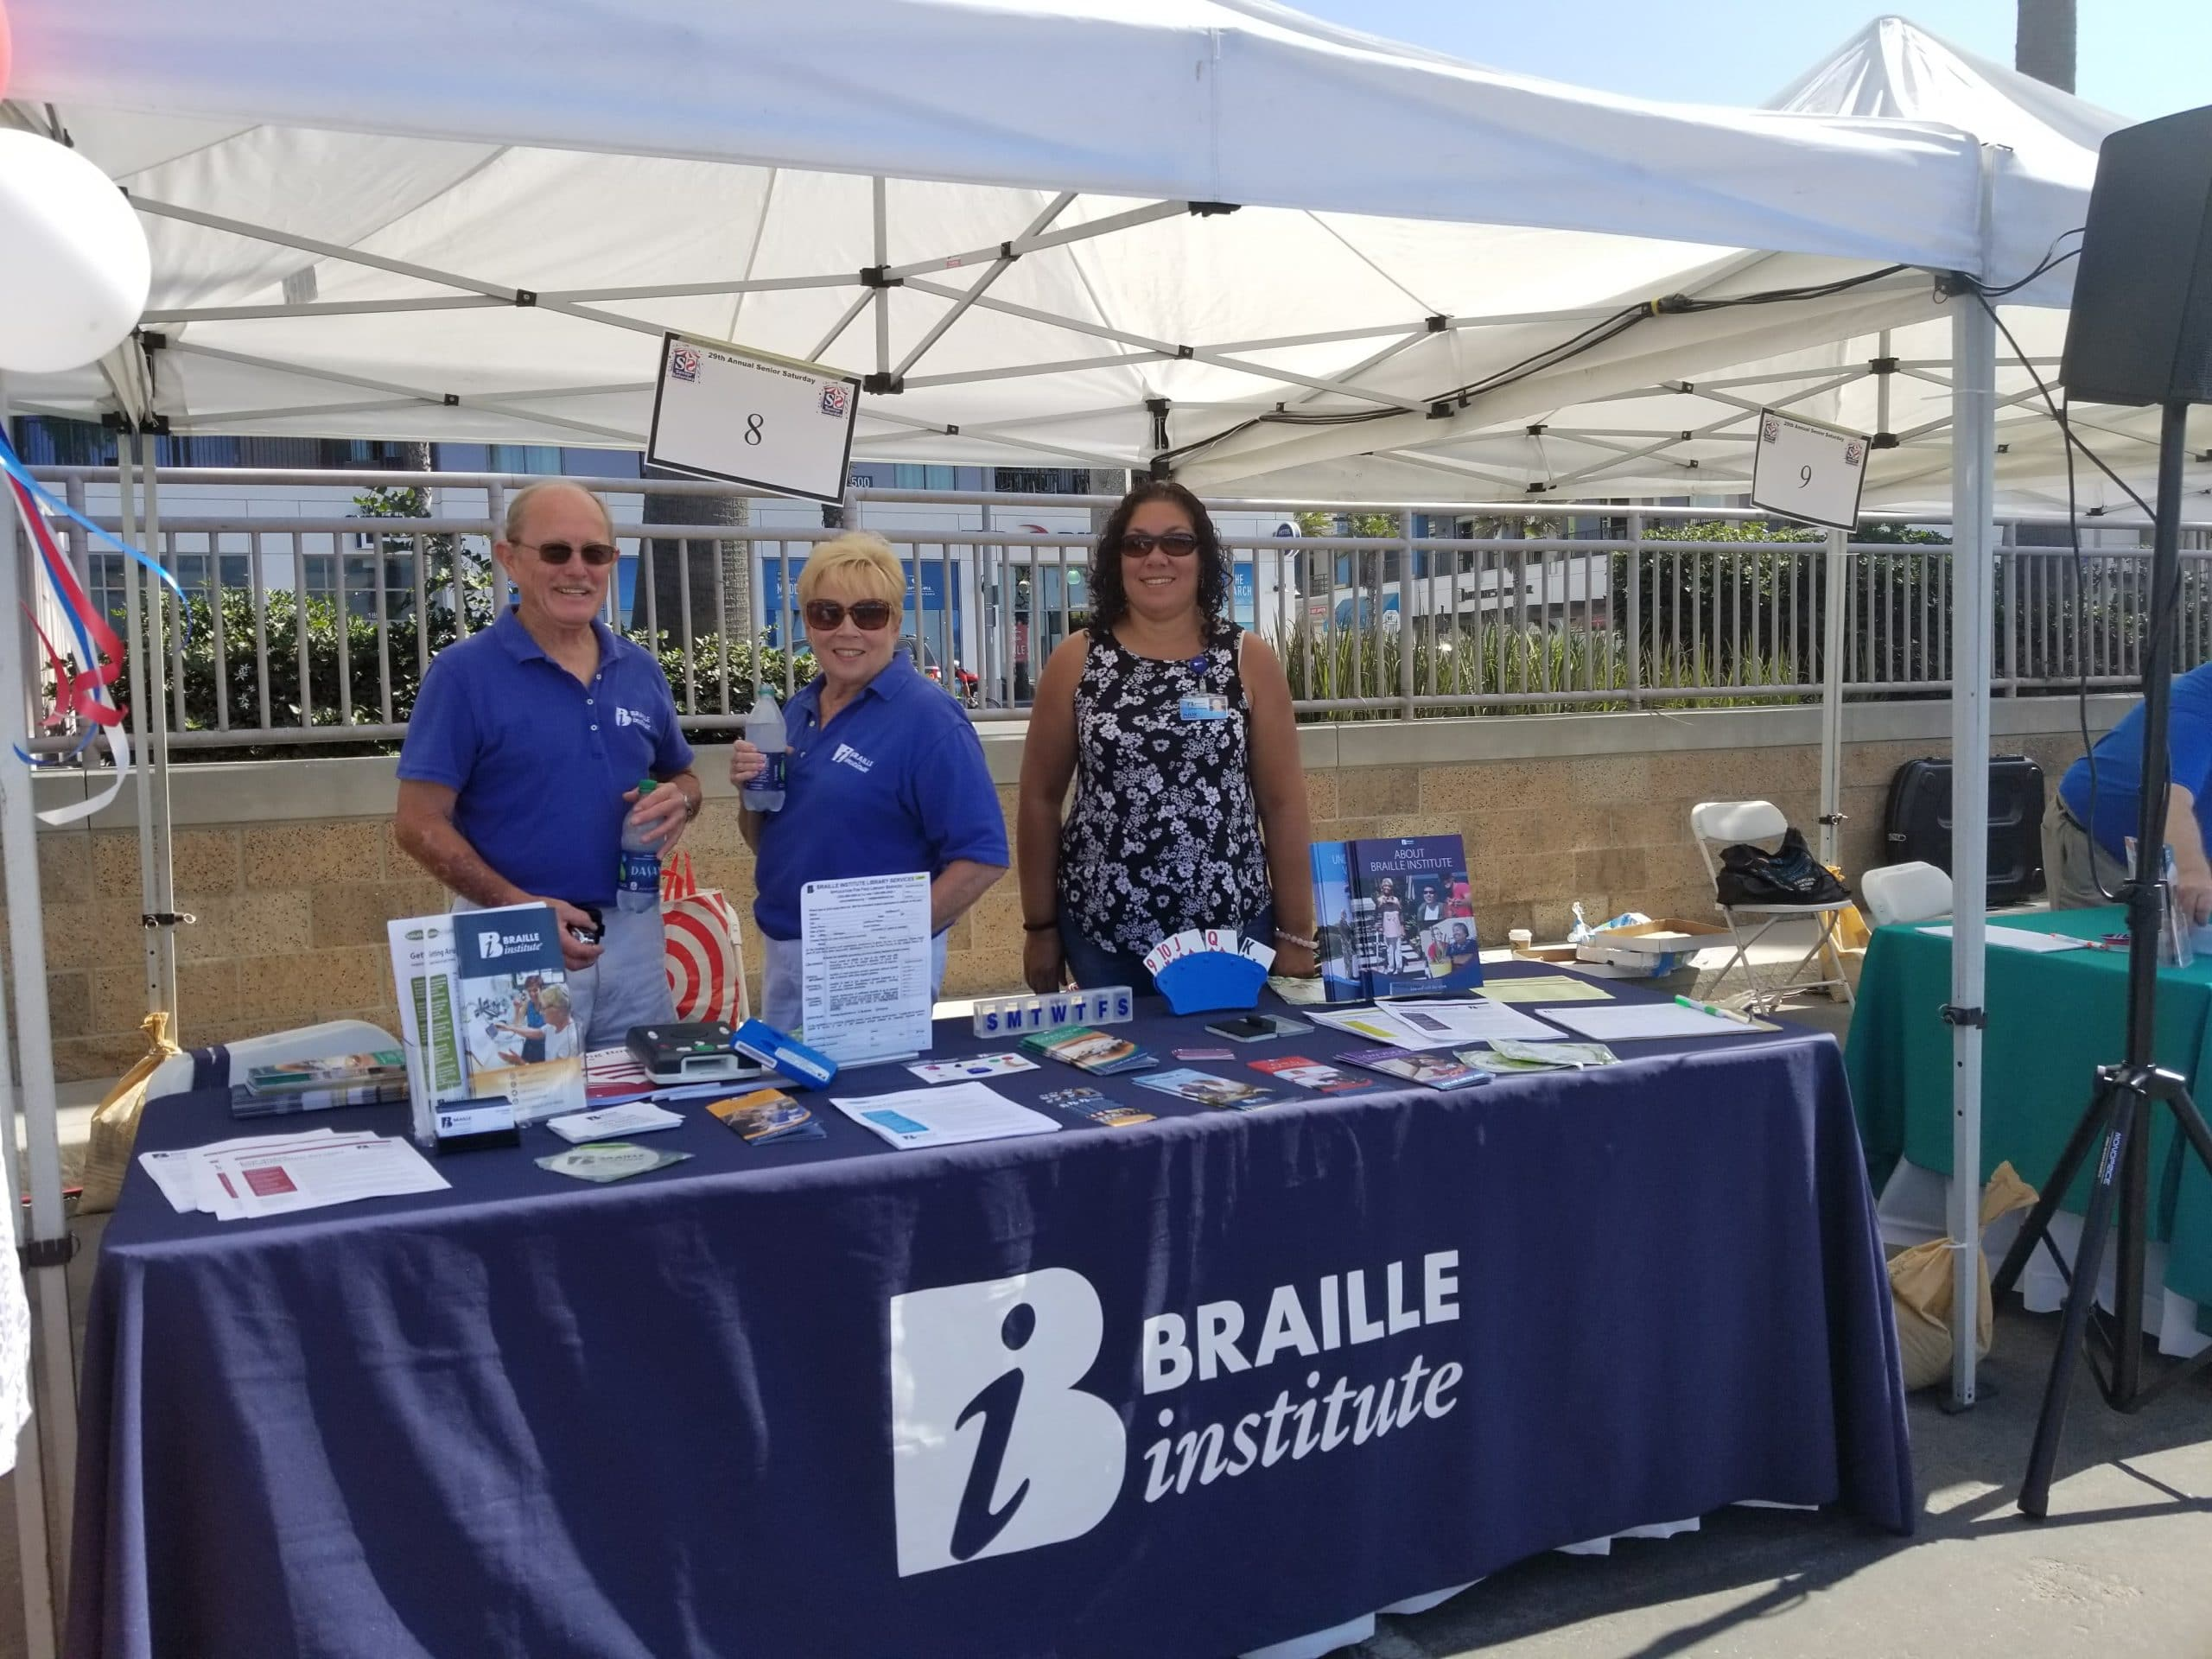 Three Braille Institute staff and volunteers standing at a booth at an outside event